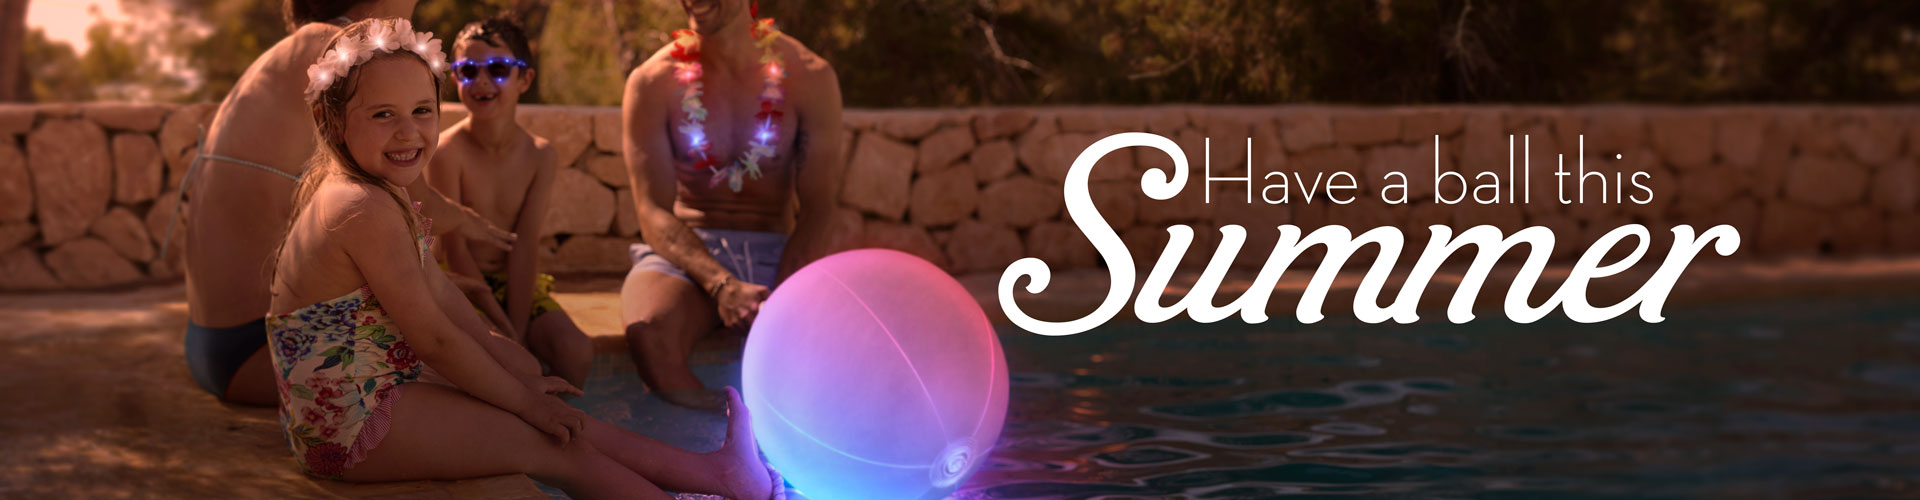 Summer Pool Hangout promotional banner